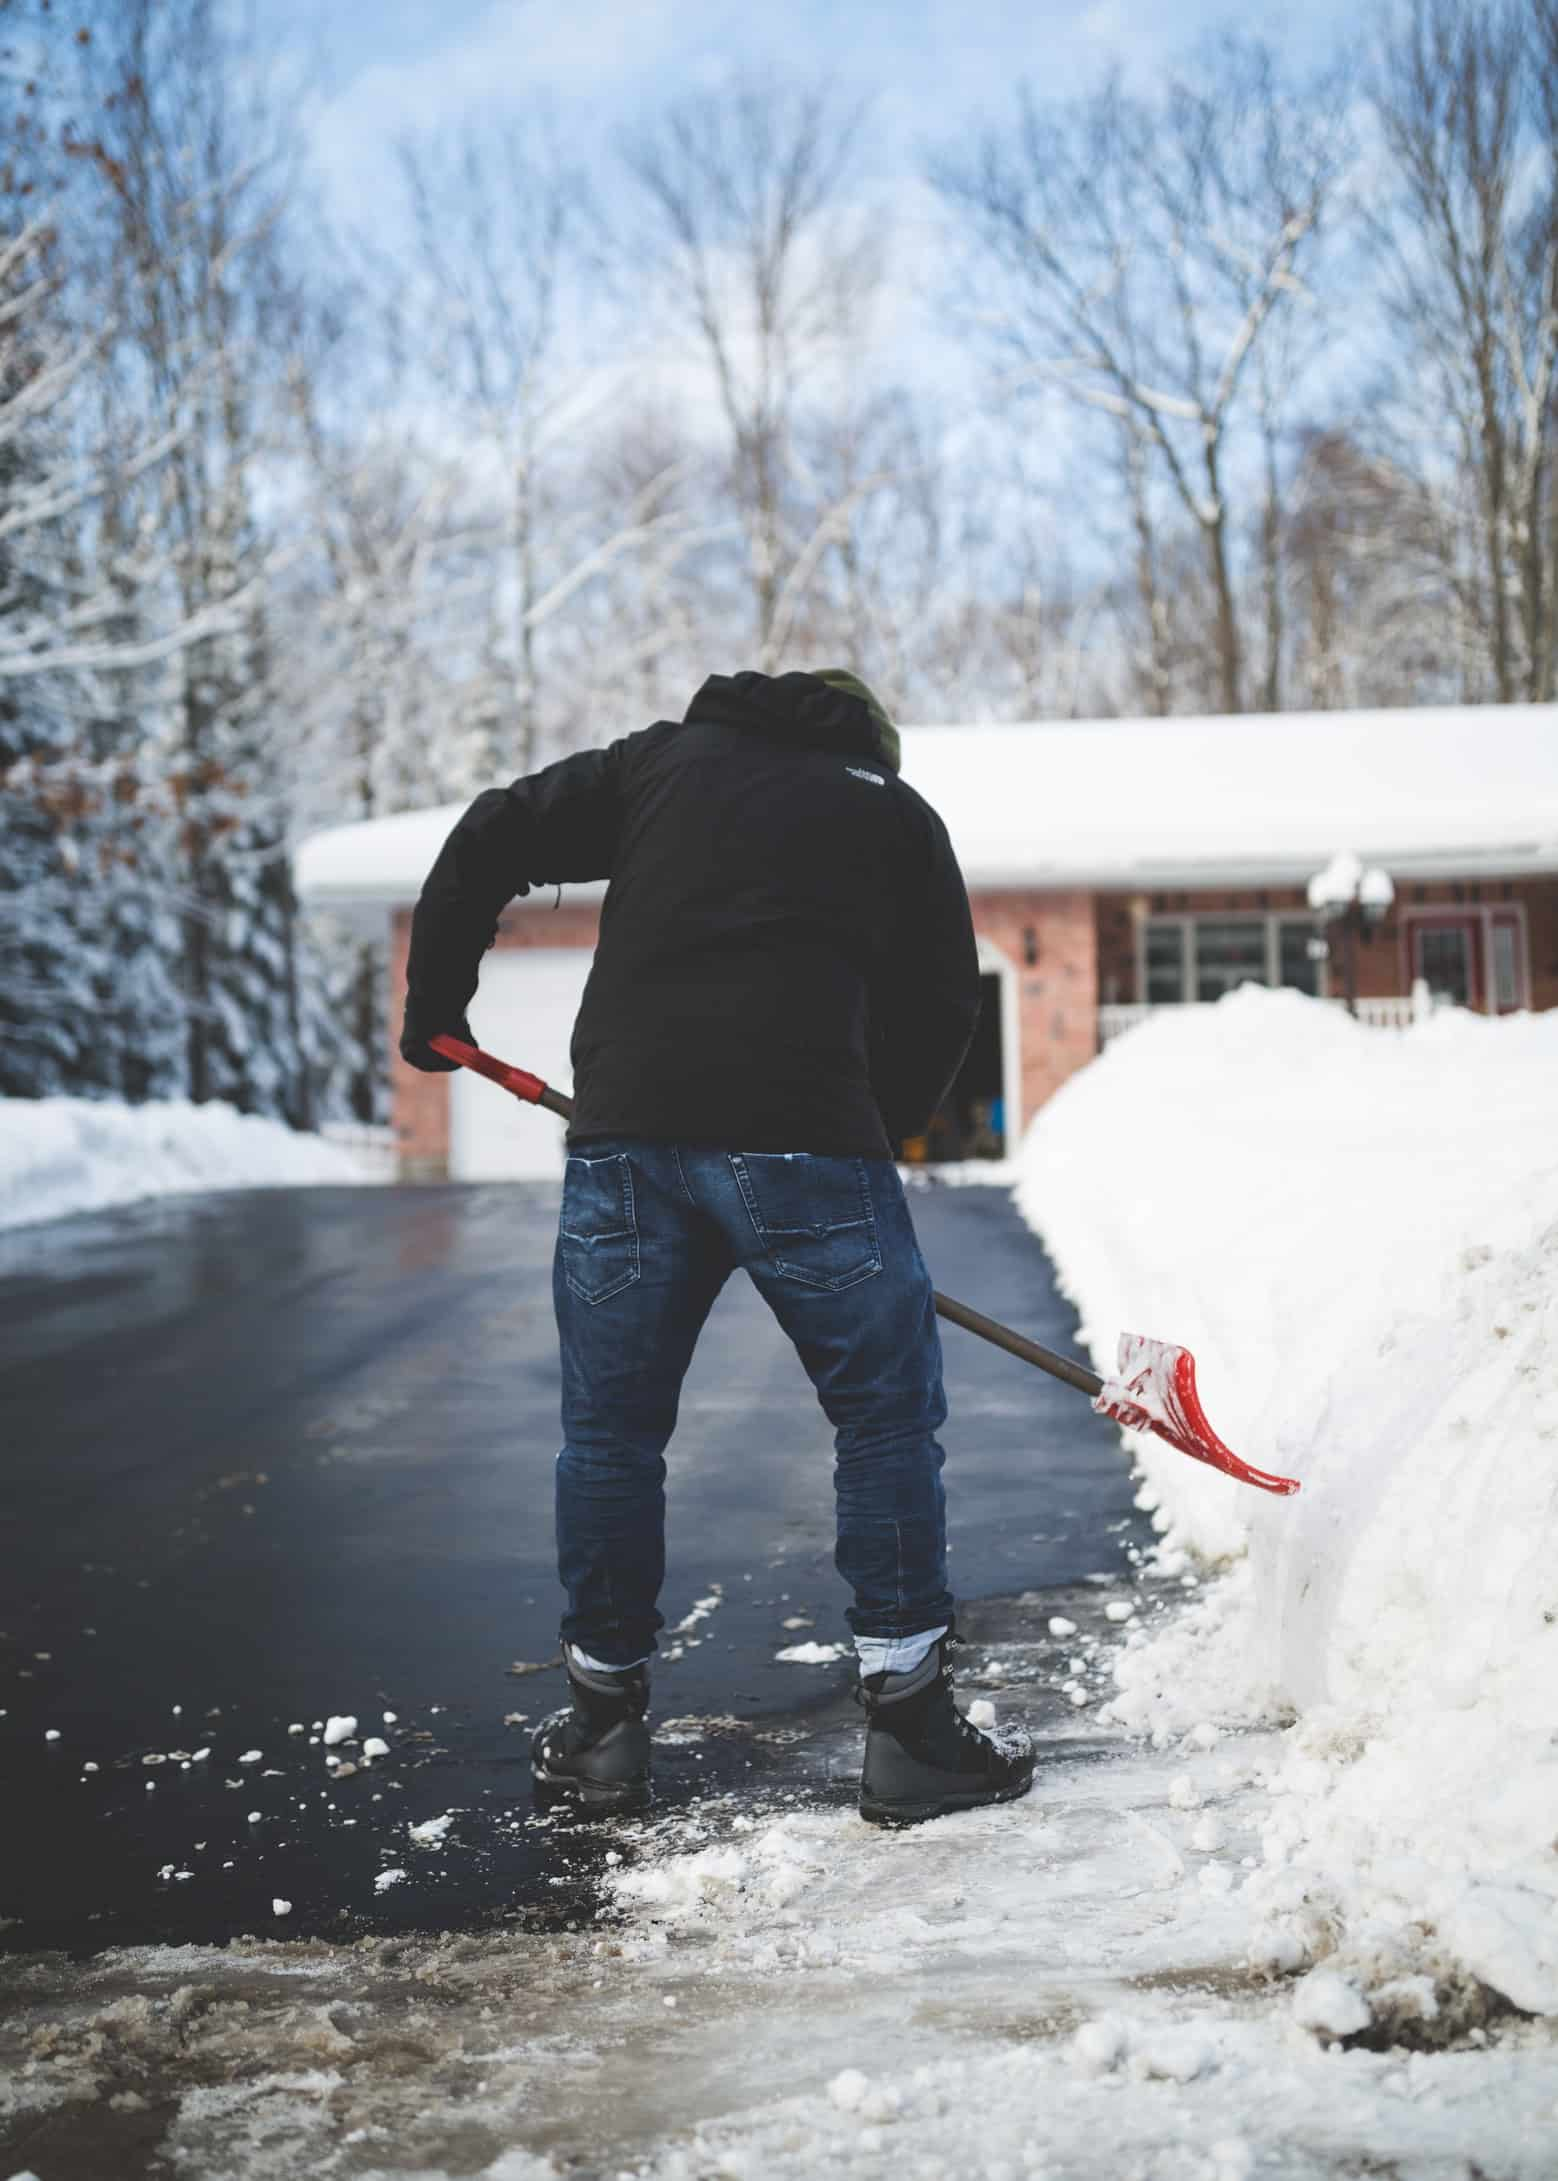 snow shoveling tips Massachusetts mcneill management.com McNeill & Son Contracting Group